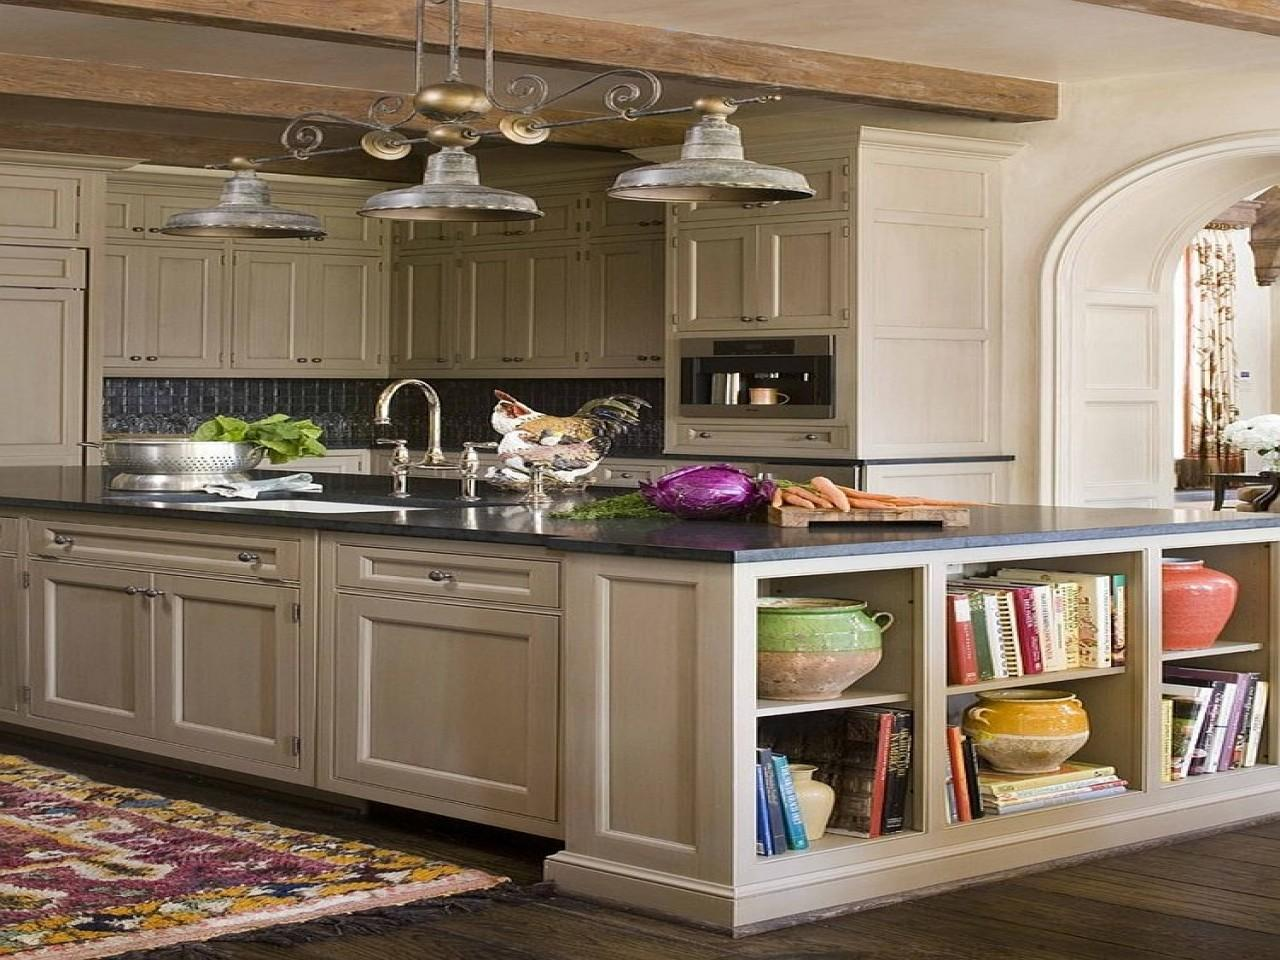 Open Shelves Add Fabulous Display Kitchen Island